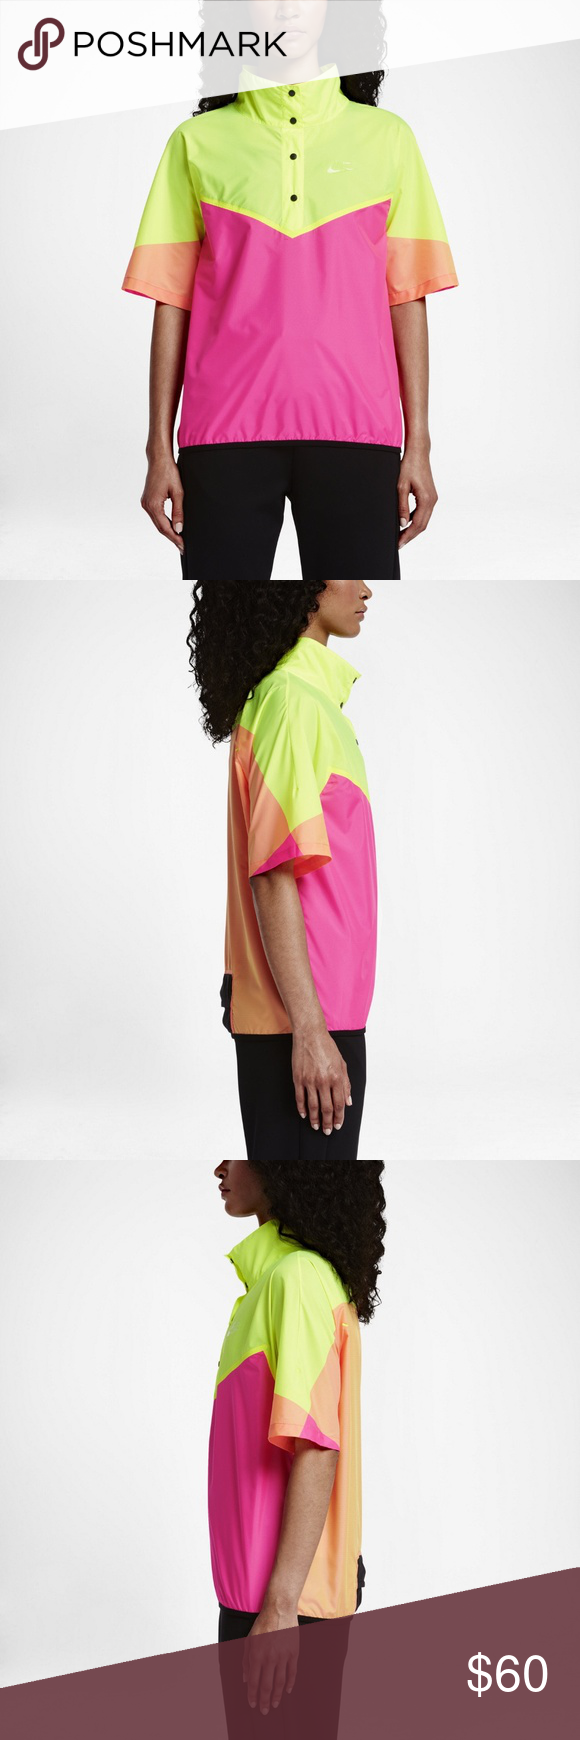 dc02f37594 Nike NikeLab X Kim Jones Packable Windrunner Top Nike NikeLab X Kim Jones  Packable Windrunner Top Style/Color: 837939-639 Size: XL Retail: $185 Pink,  ...